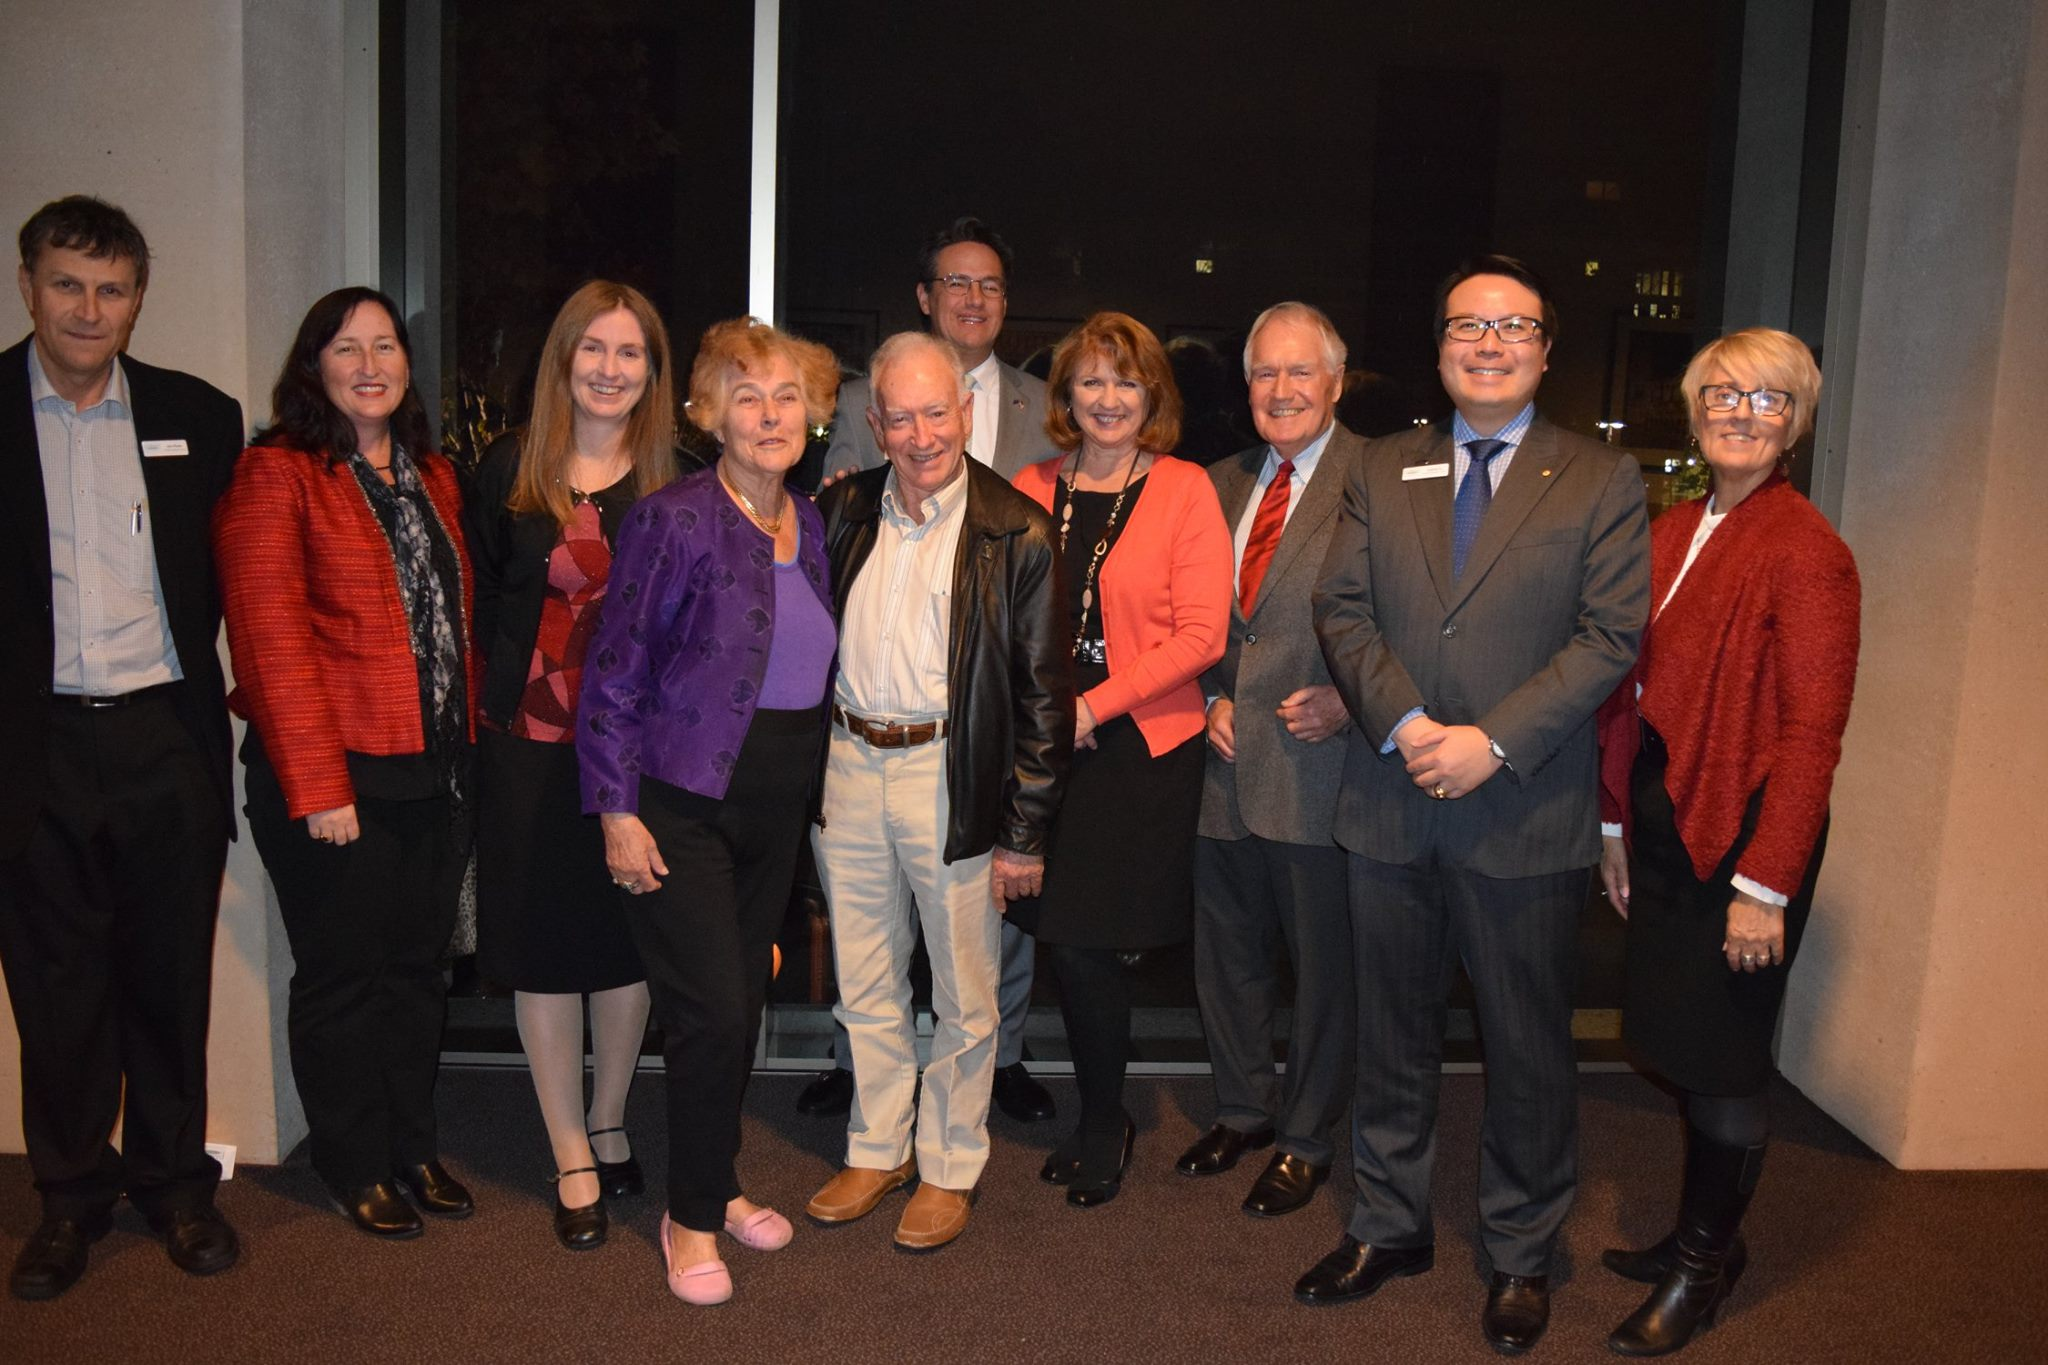 Generations of former Fulbrighters shared stories at the 2016 Fulbright WA Reception